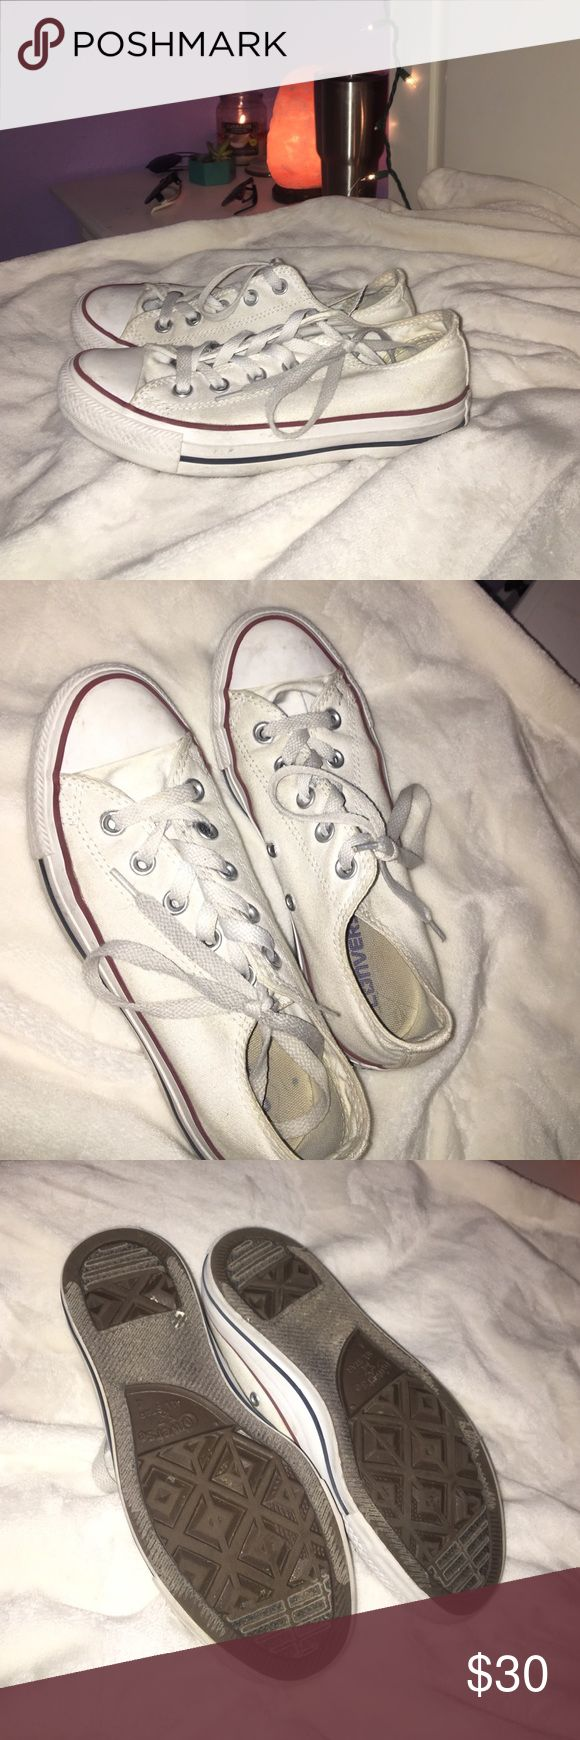 WHITE LOW TOP CONVERSE supet cute low top converse perfect for any look!! SIZE 4 BUT RUN TO ABOUT A 5 Converse Shoes